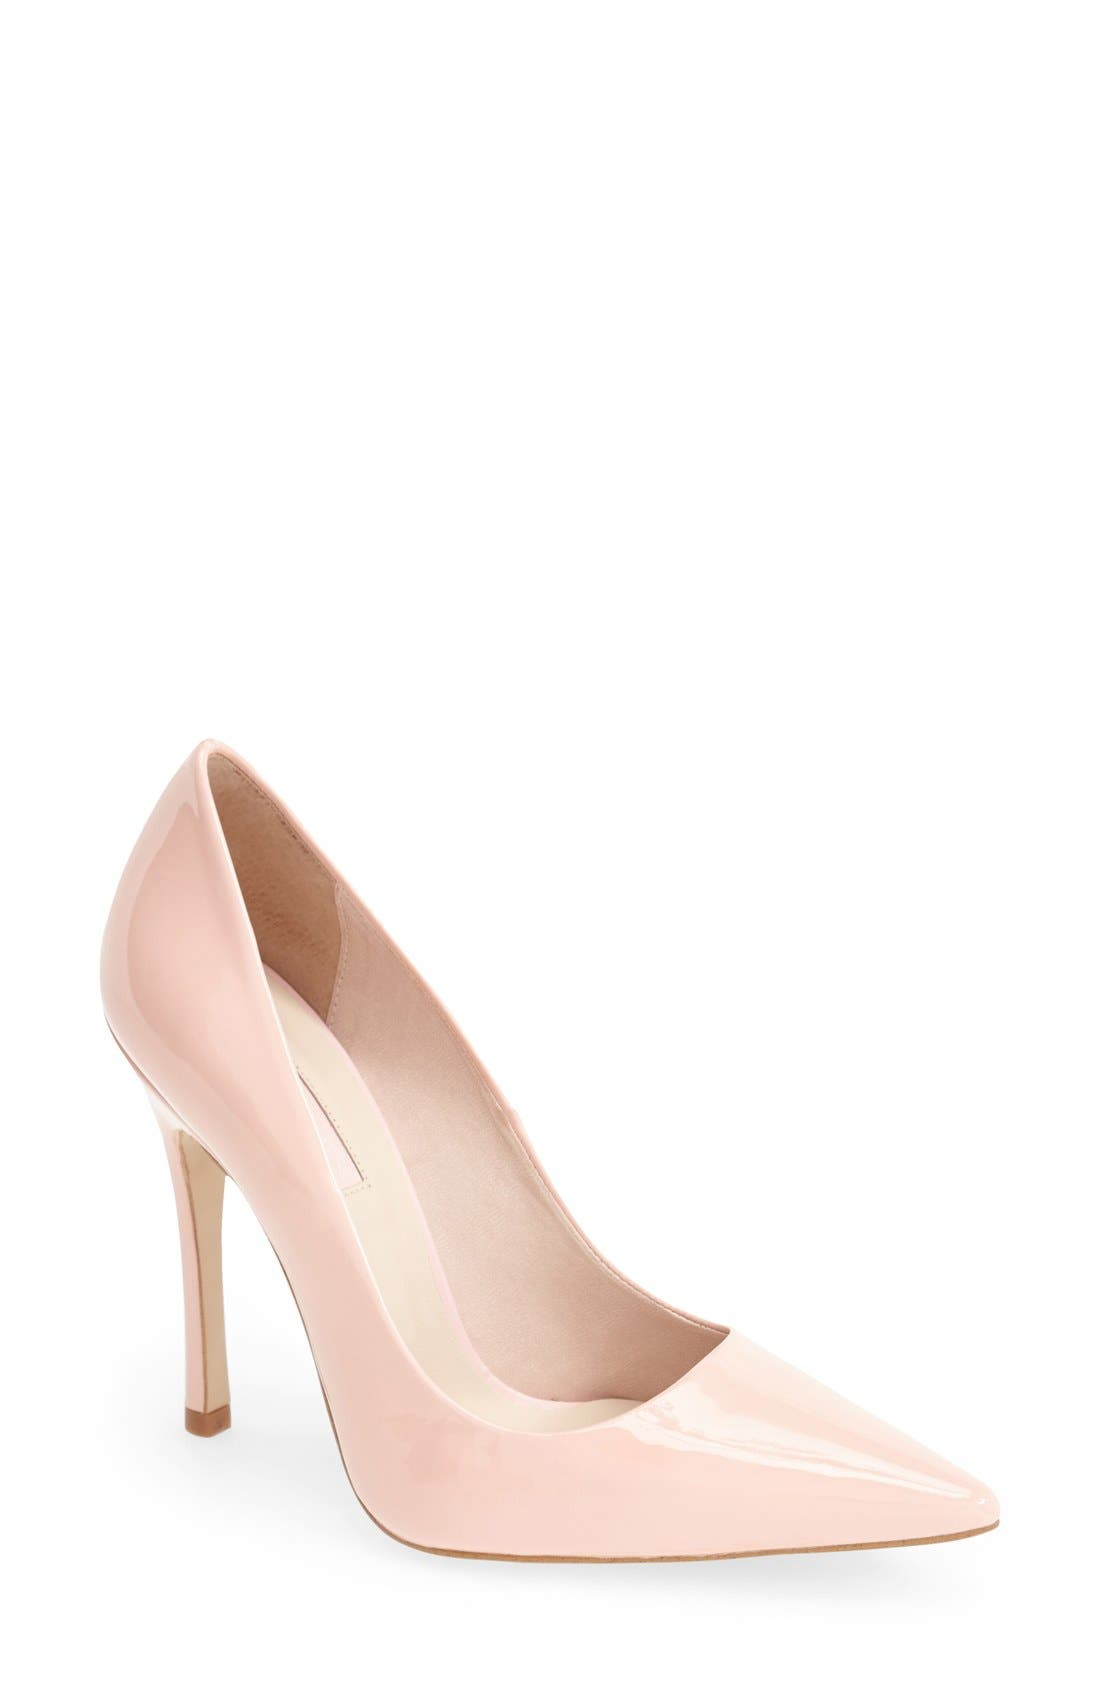 Main Image - Topshop 'Gallop' Patent Pointy Toe Pump (Women)